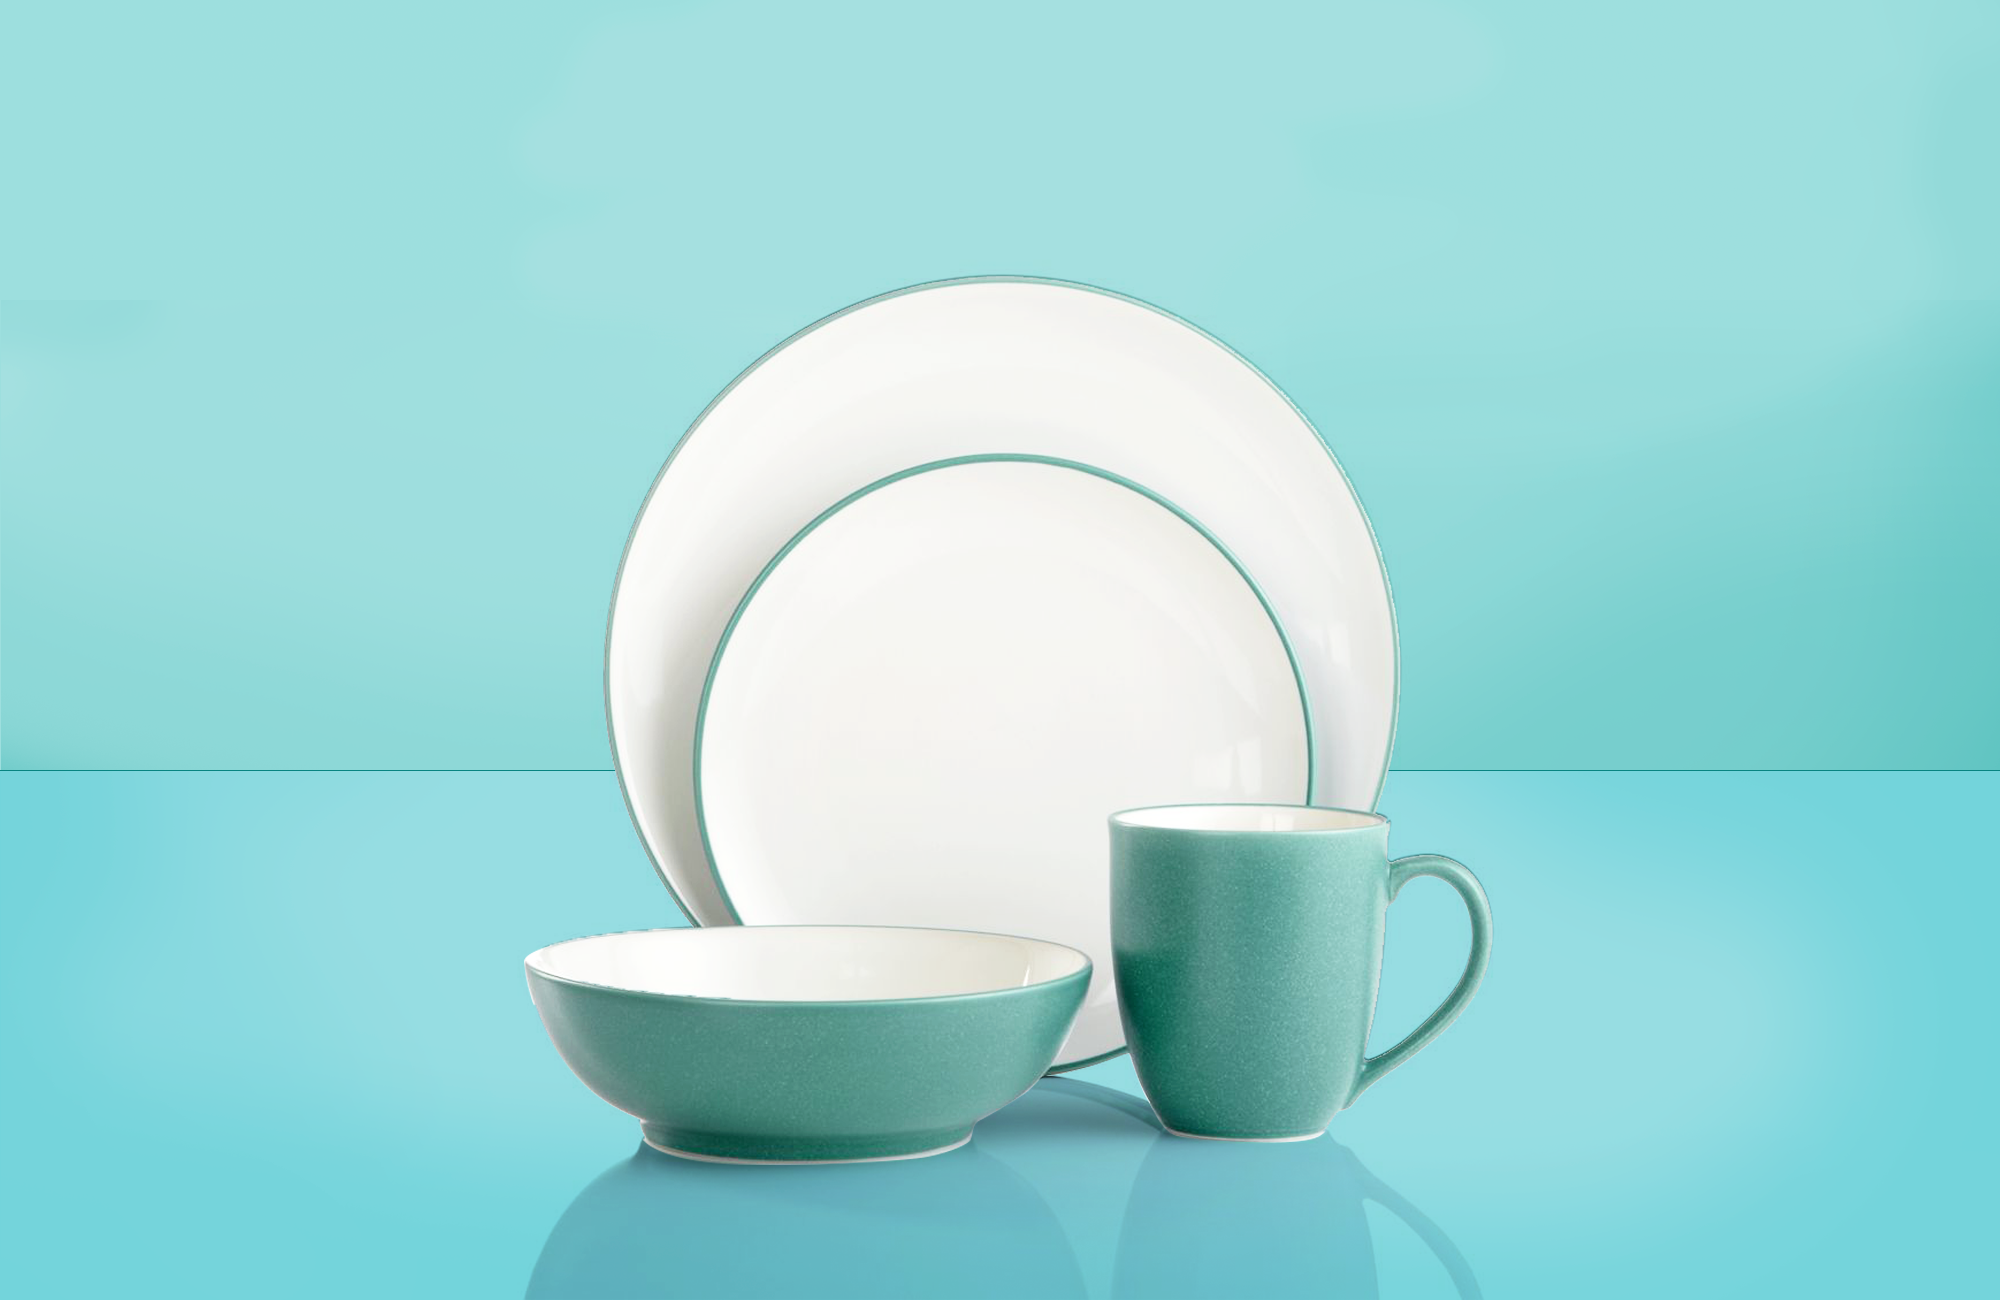 8 Best Dinnerware Sets of 8 - Top-Reviewed Plate and Dish Sets